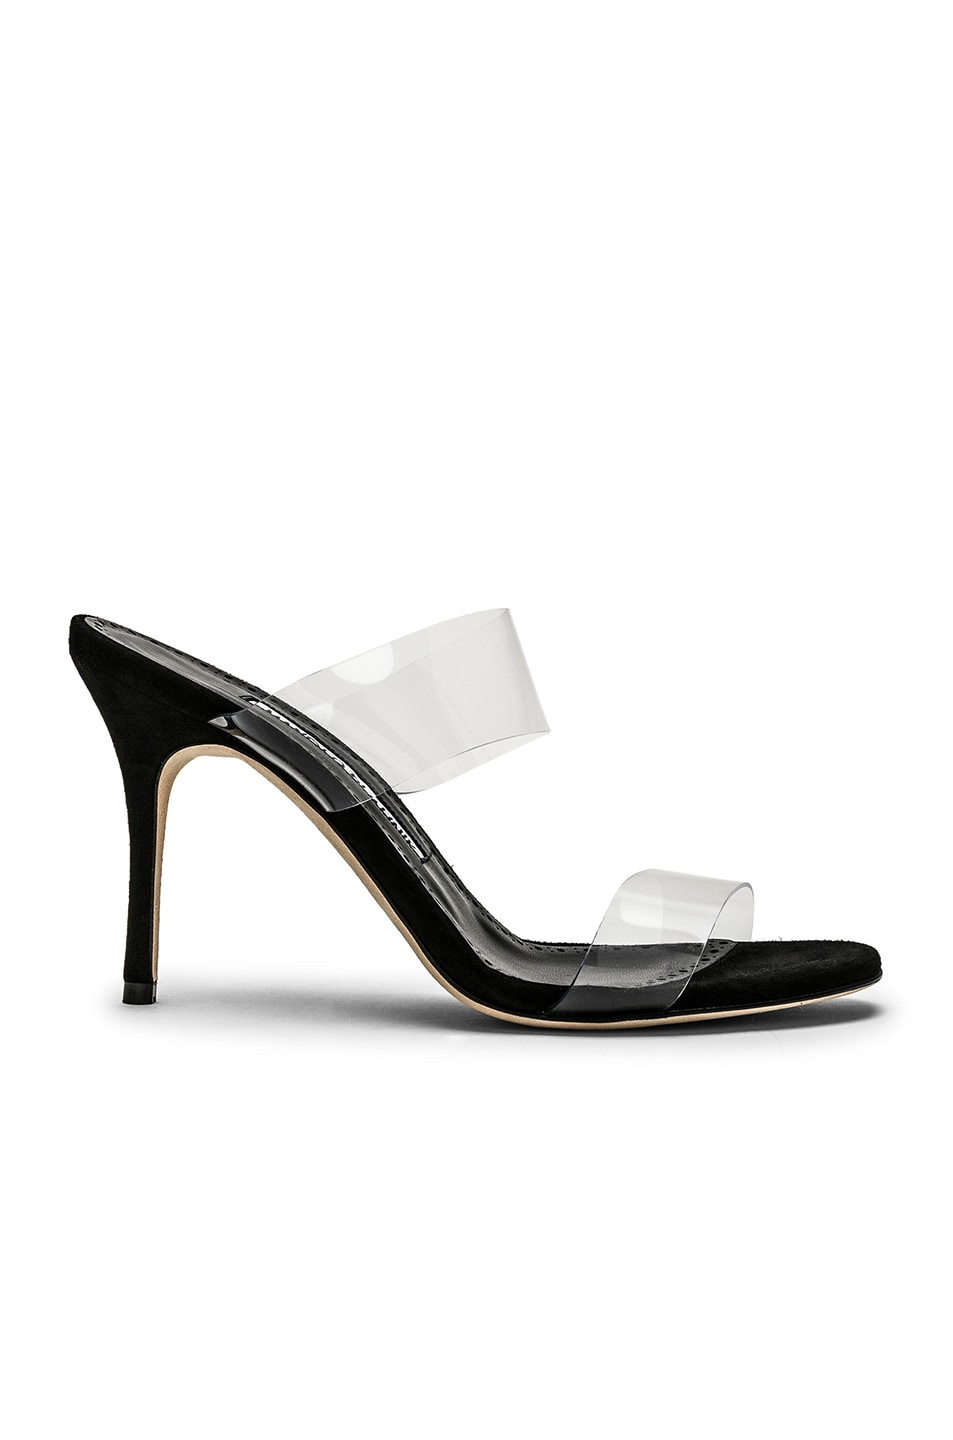 Image 1 of Manolo Blahnik PVC Scolto 90 Sandal in Black